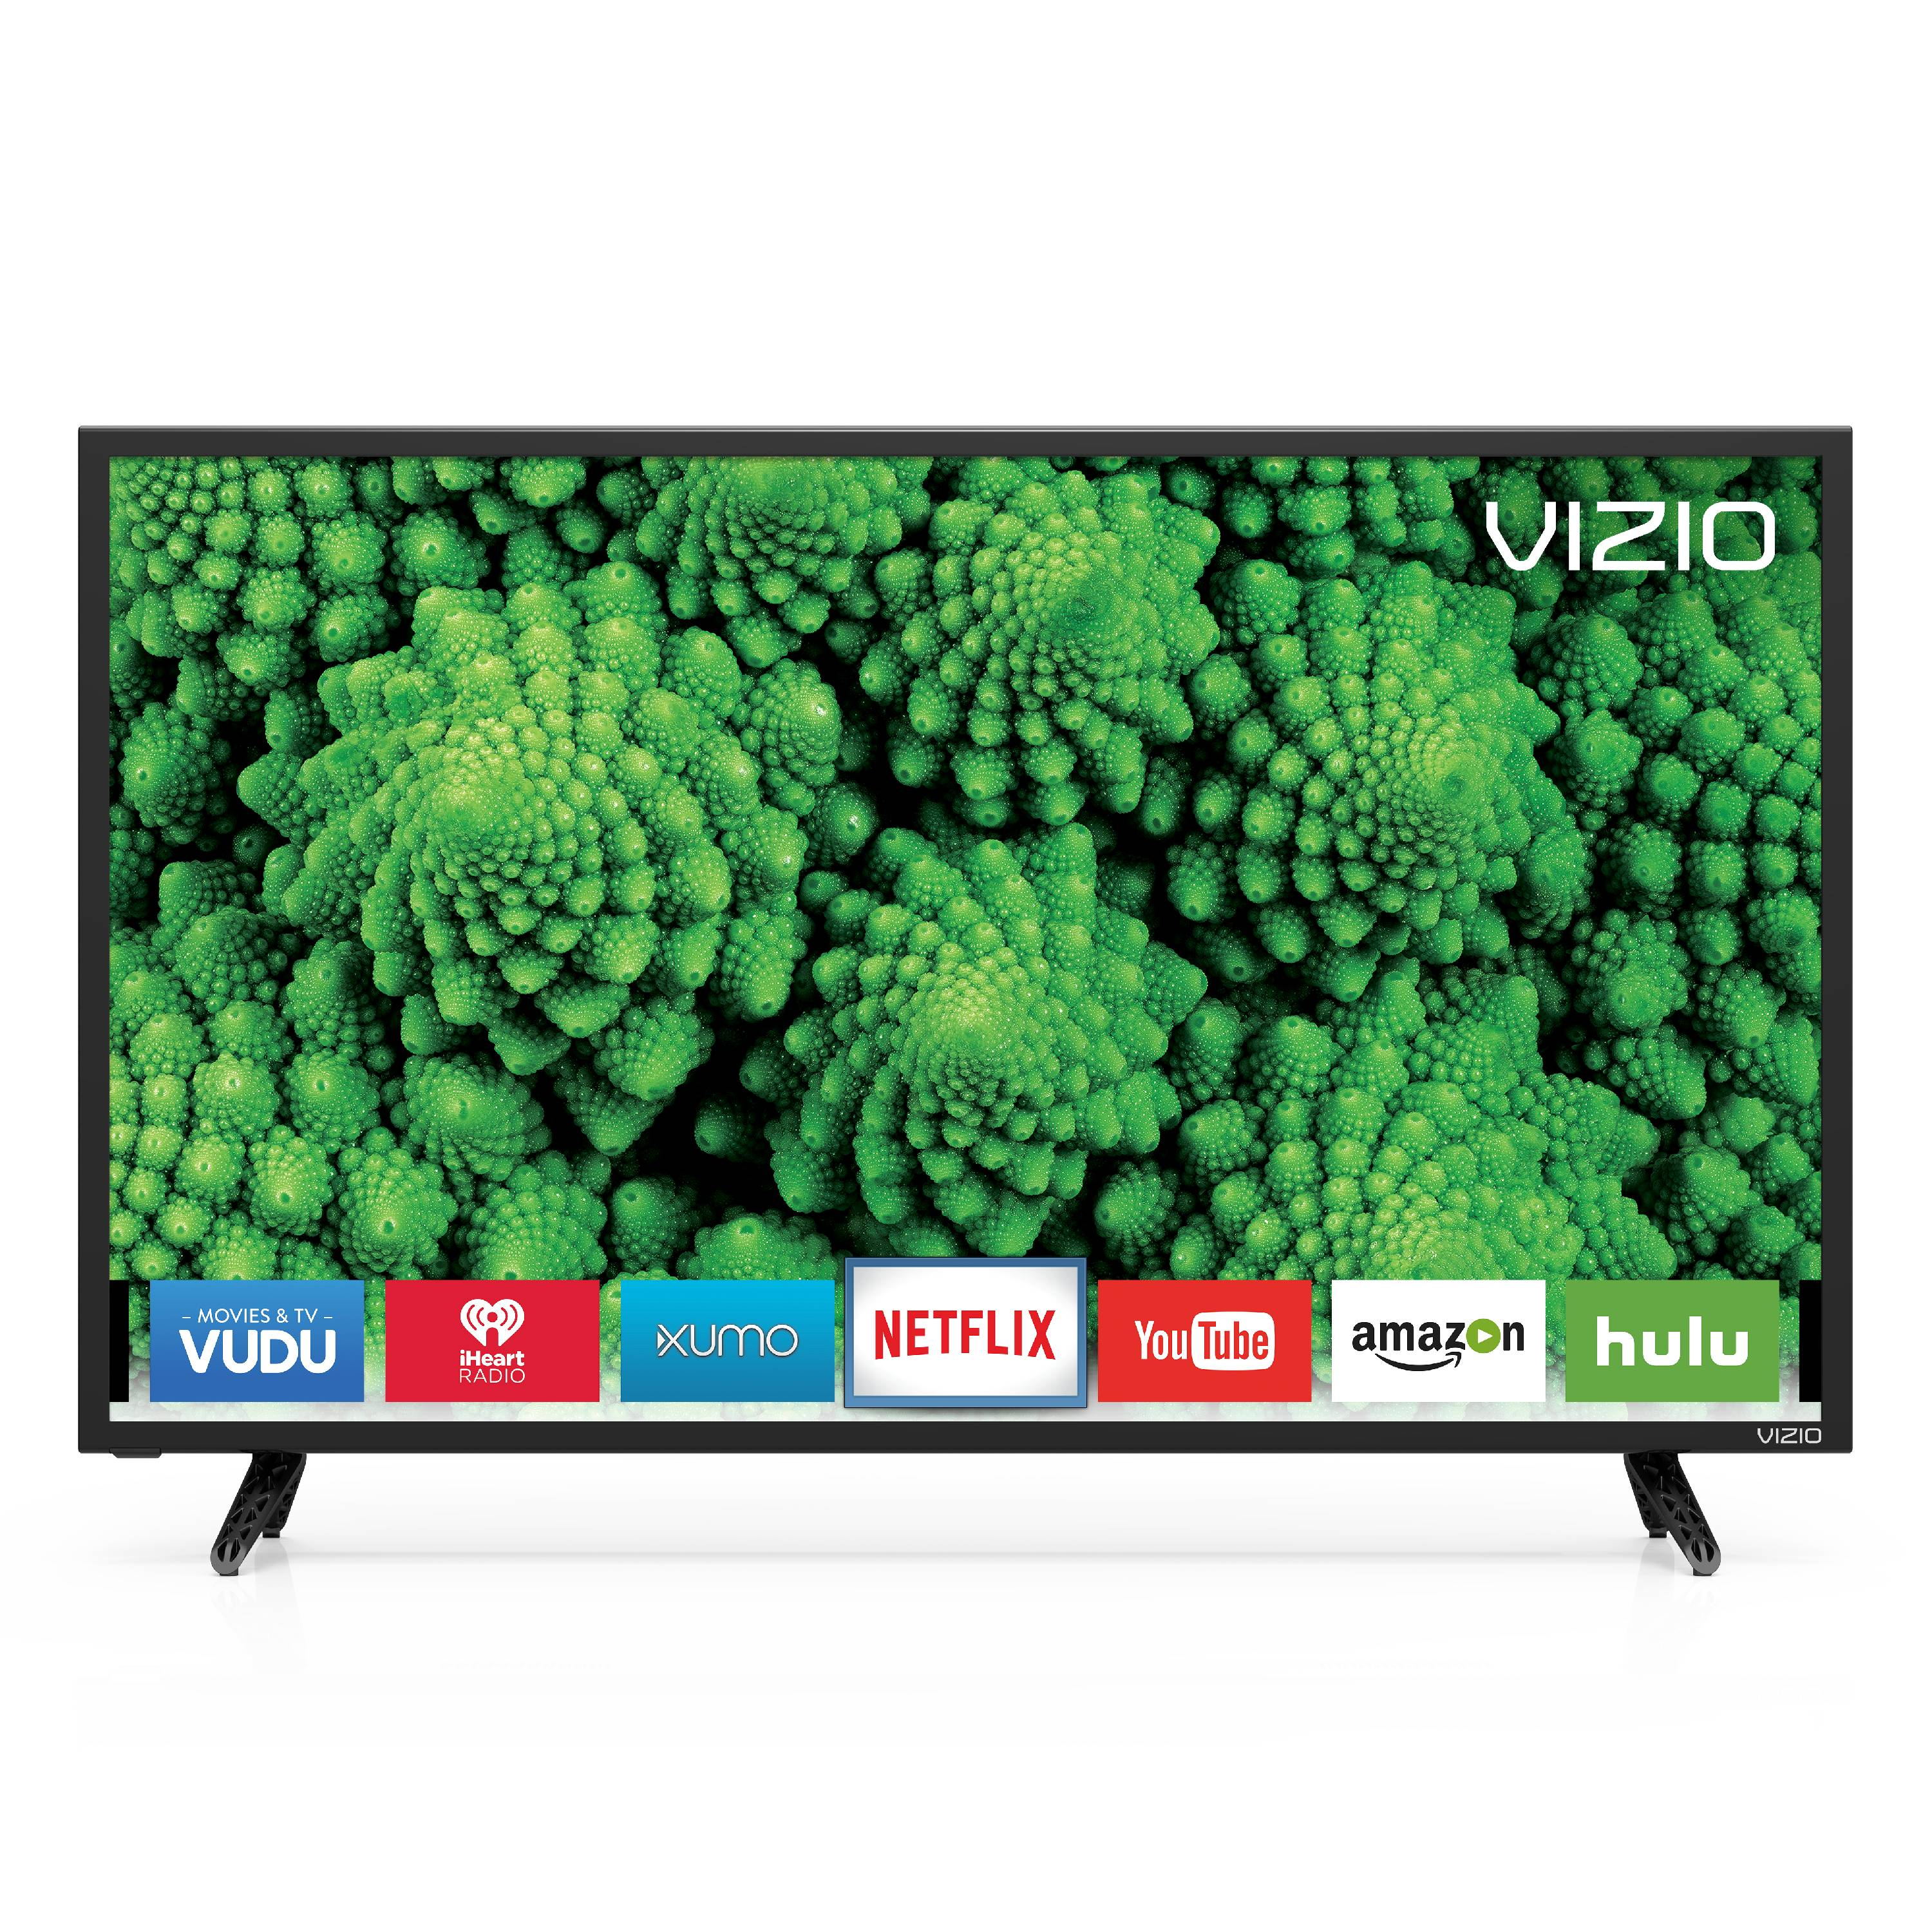 Vizio 43 class fhd 1080p smart led tv d43f e2 walmart fandeluxe Image collections